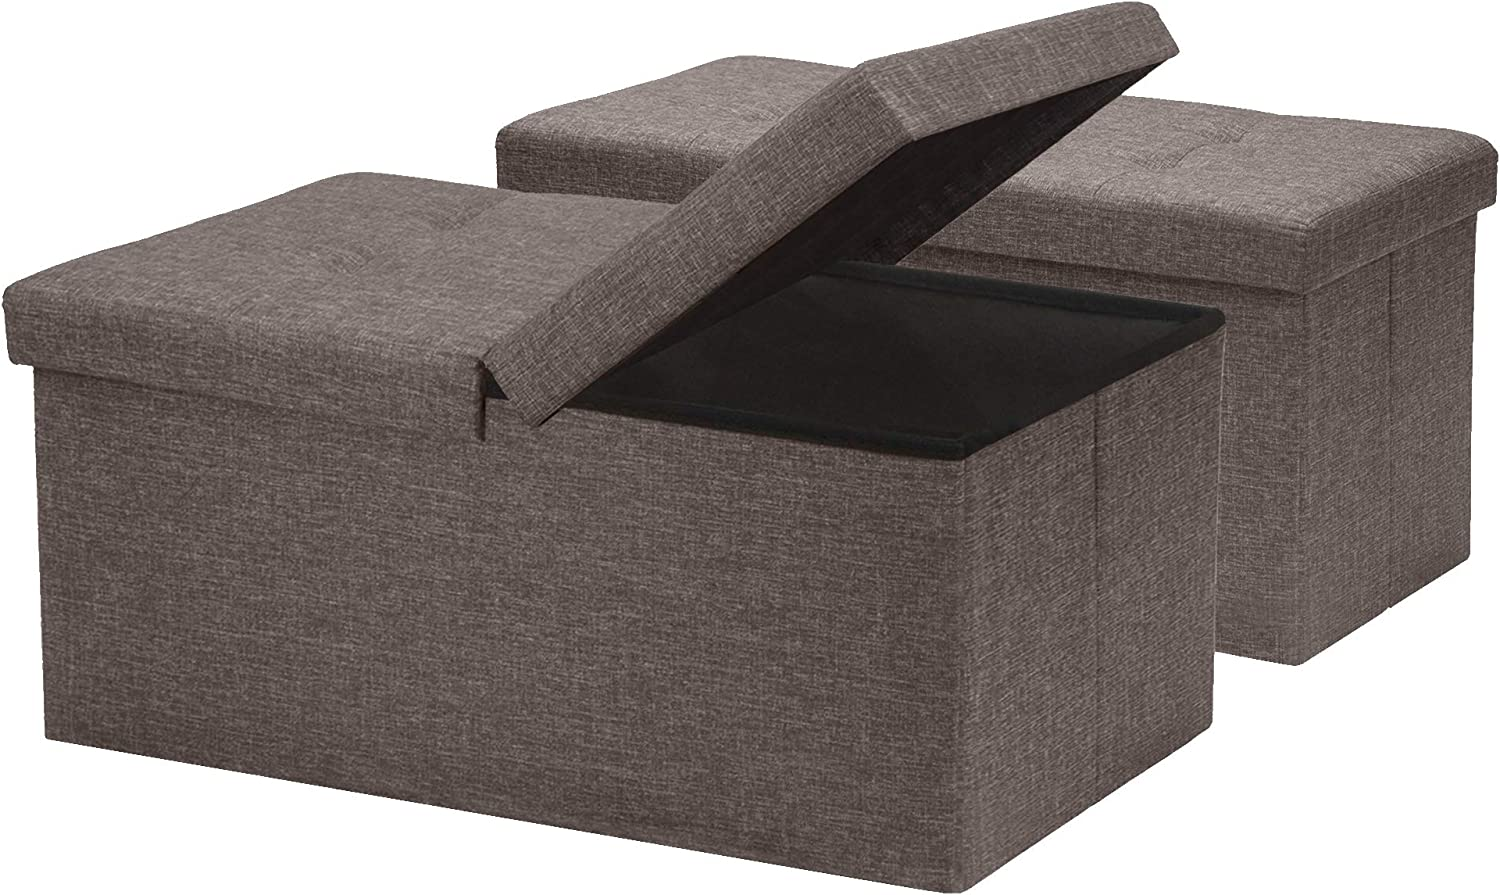 Otto & Ben [2pc Set] Folding Toy Box Chest with SMART LIFT Top Linen Fabric Ottomans Bench Foot Rest for Bedroom and Living Room, Brown